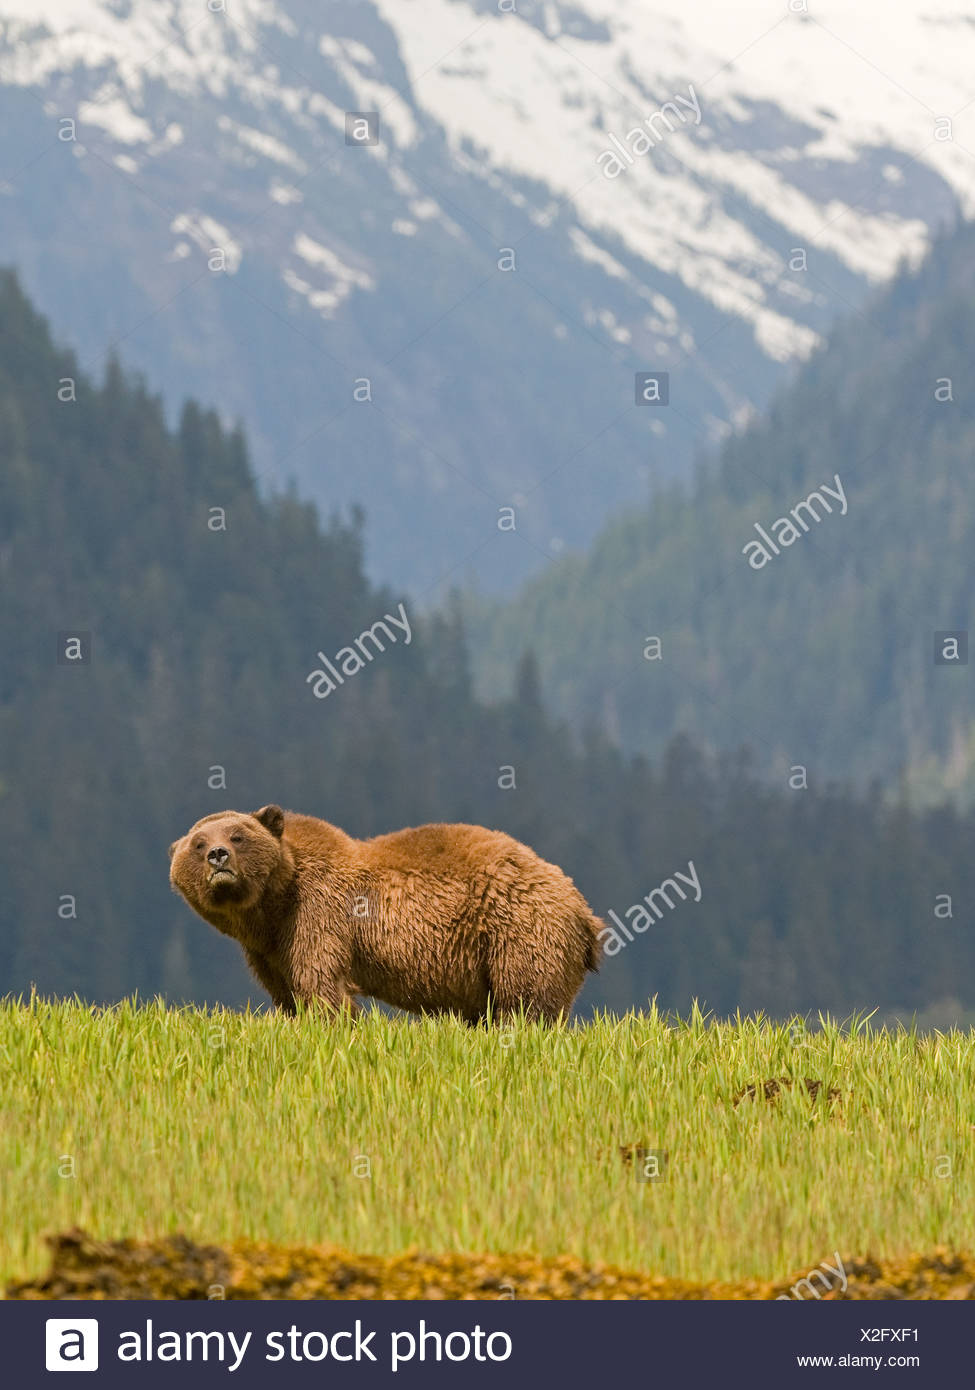 Male Grizzly Bear (Ursus arctos horribilis)  Khutzeymateen Grizzly Bear Sanctuary North of Prince Rupert British Columbia Canada - Stock Image